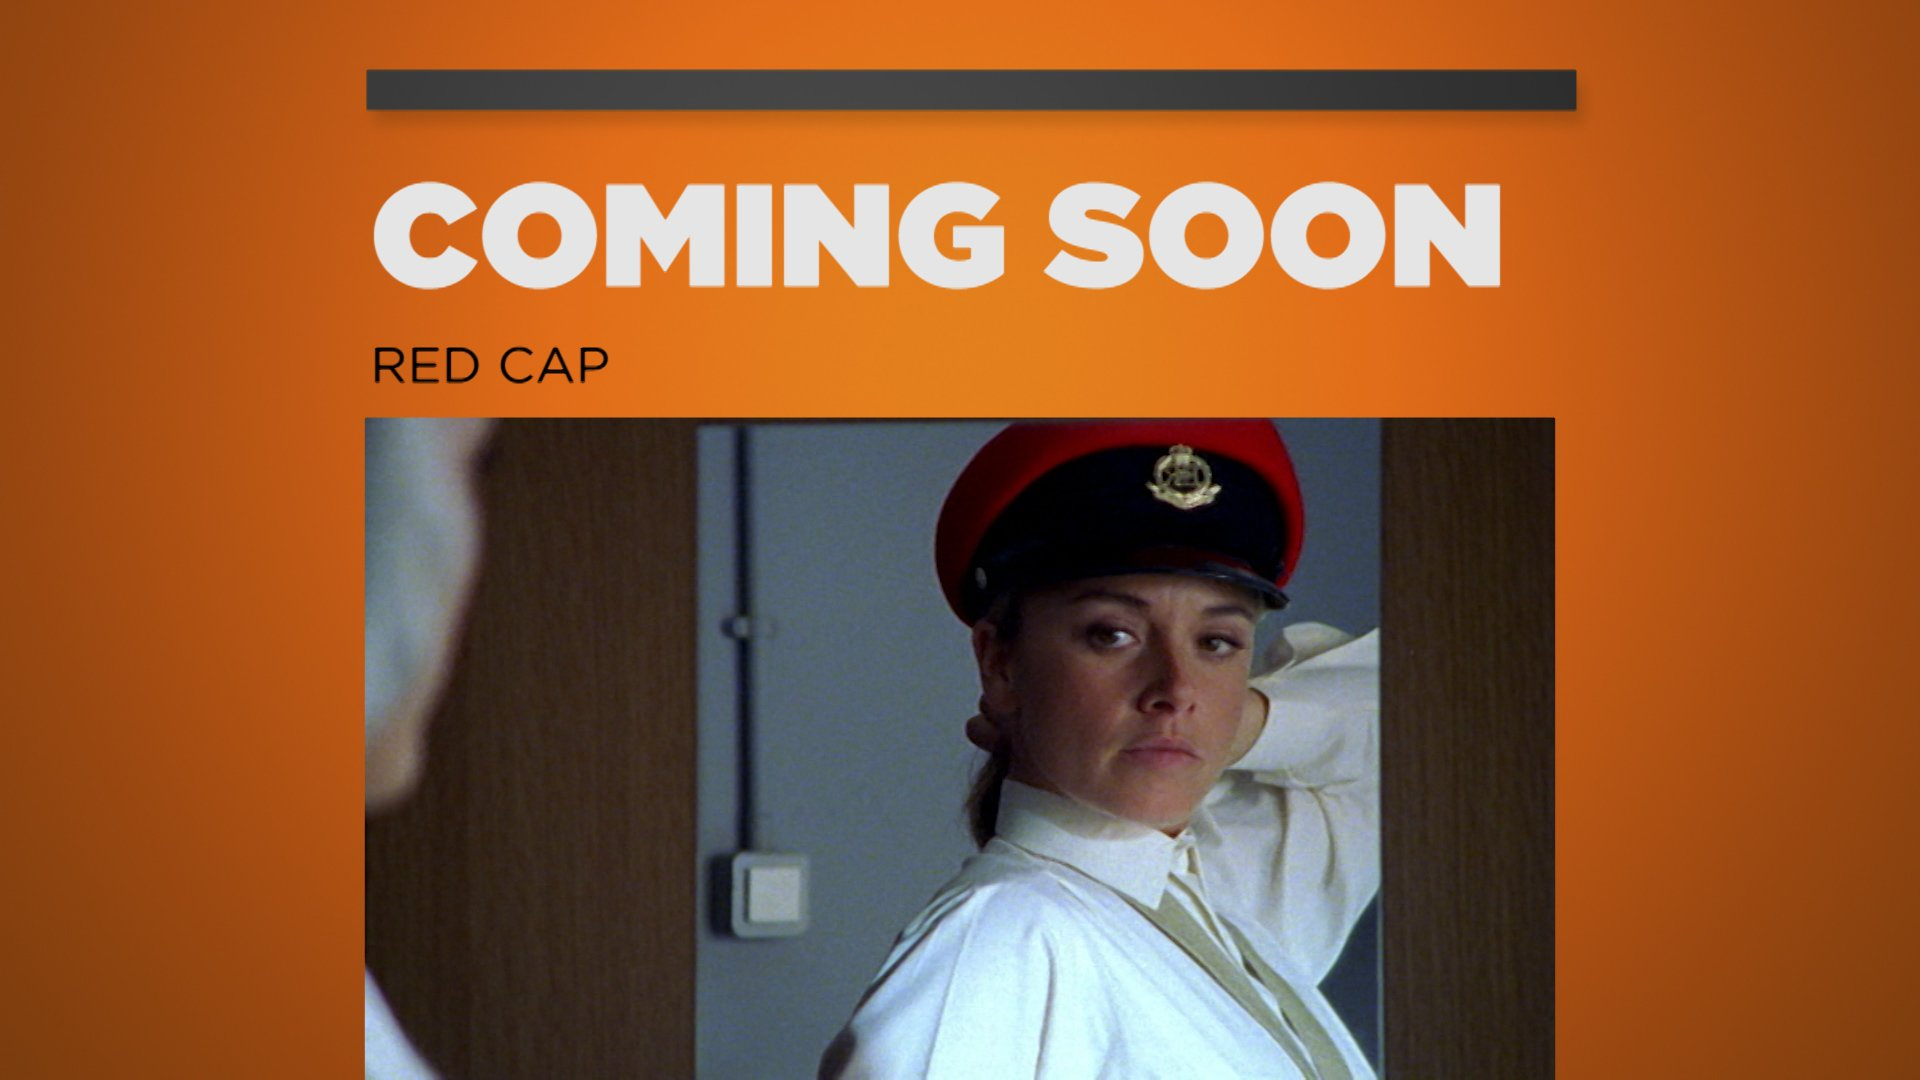 RT @ForcesNews: *NEW to Forces TV* Don't miss 'Redcap' starting this Monday at 9pm! Starring Tamzin Outhwaite.. https://t.co/OicRrFl3fQ